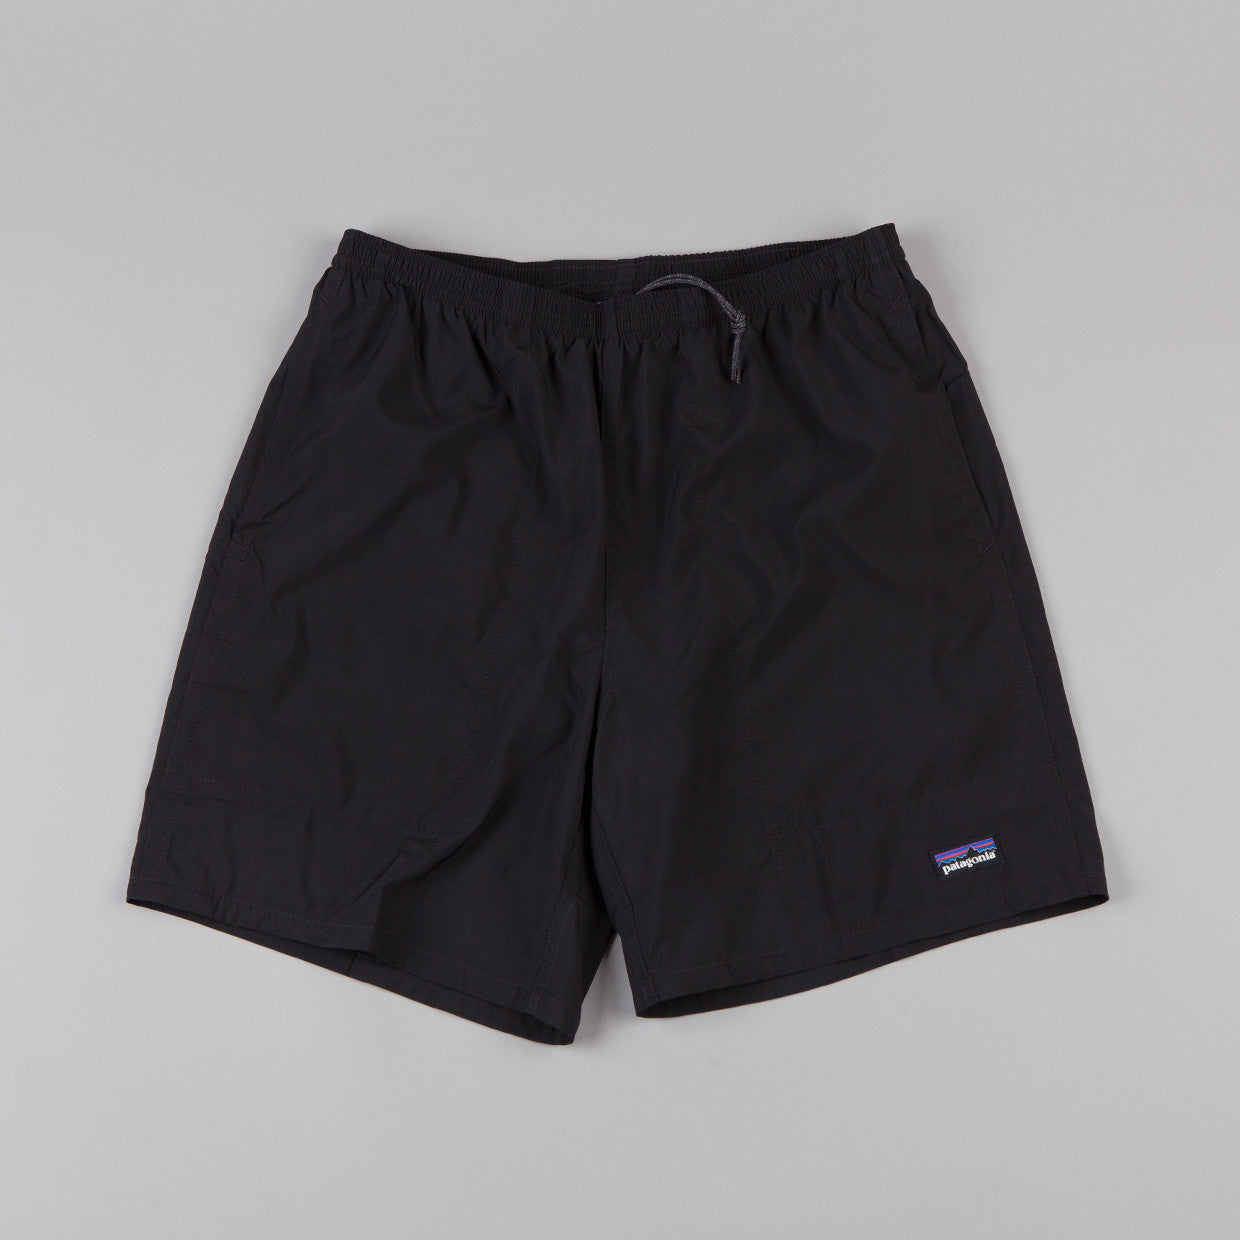 Patagonia Baggies¢€ž¢ Lights Shorts Black